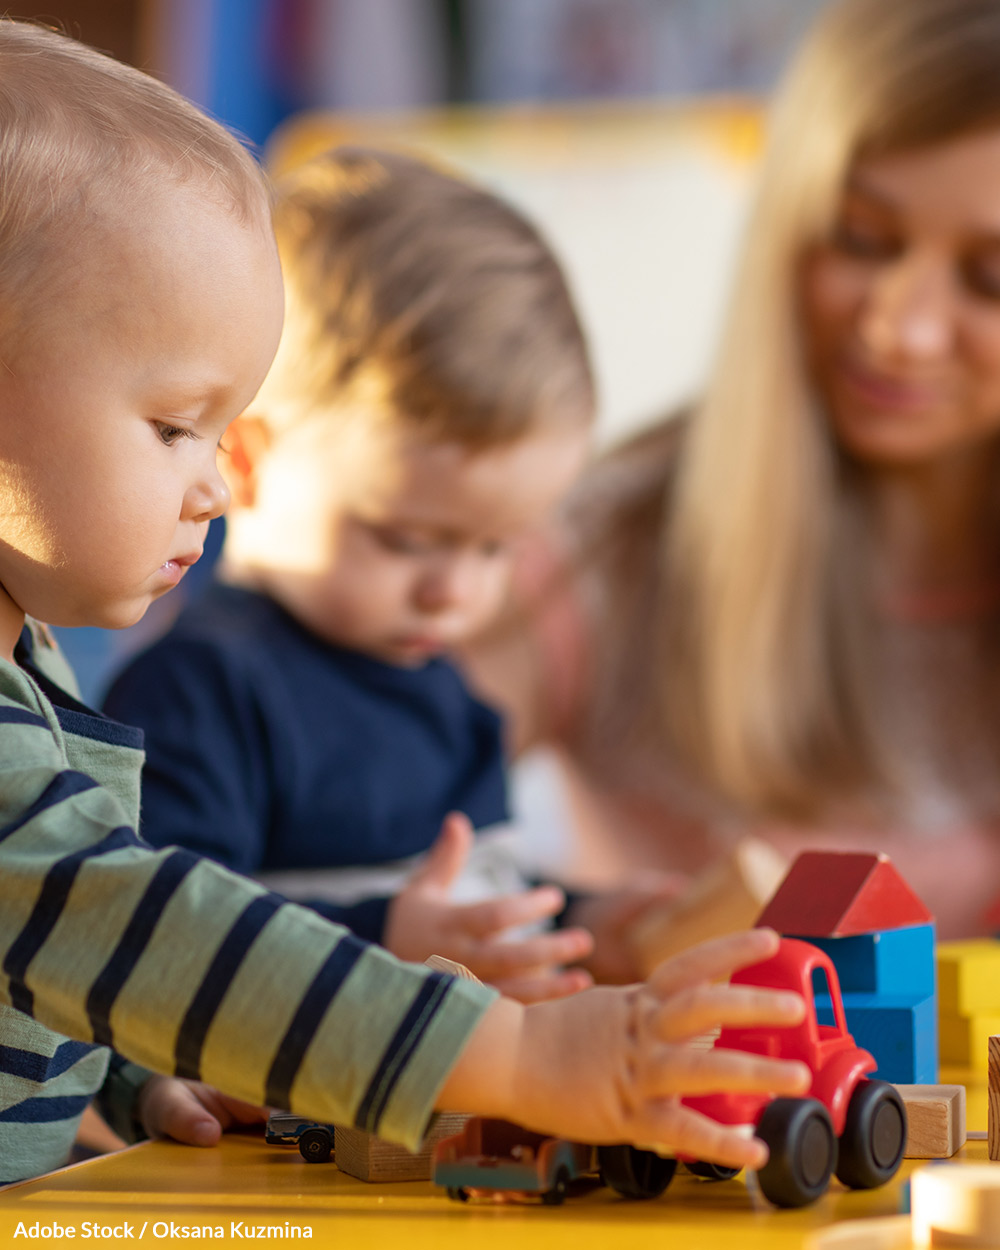 Child care costs American parents $1,000 to $6,000 a month.